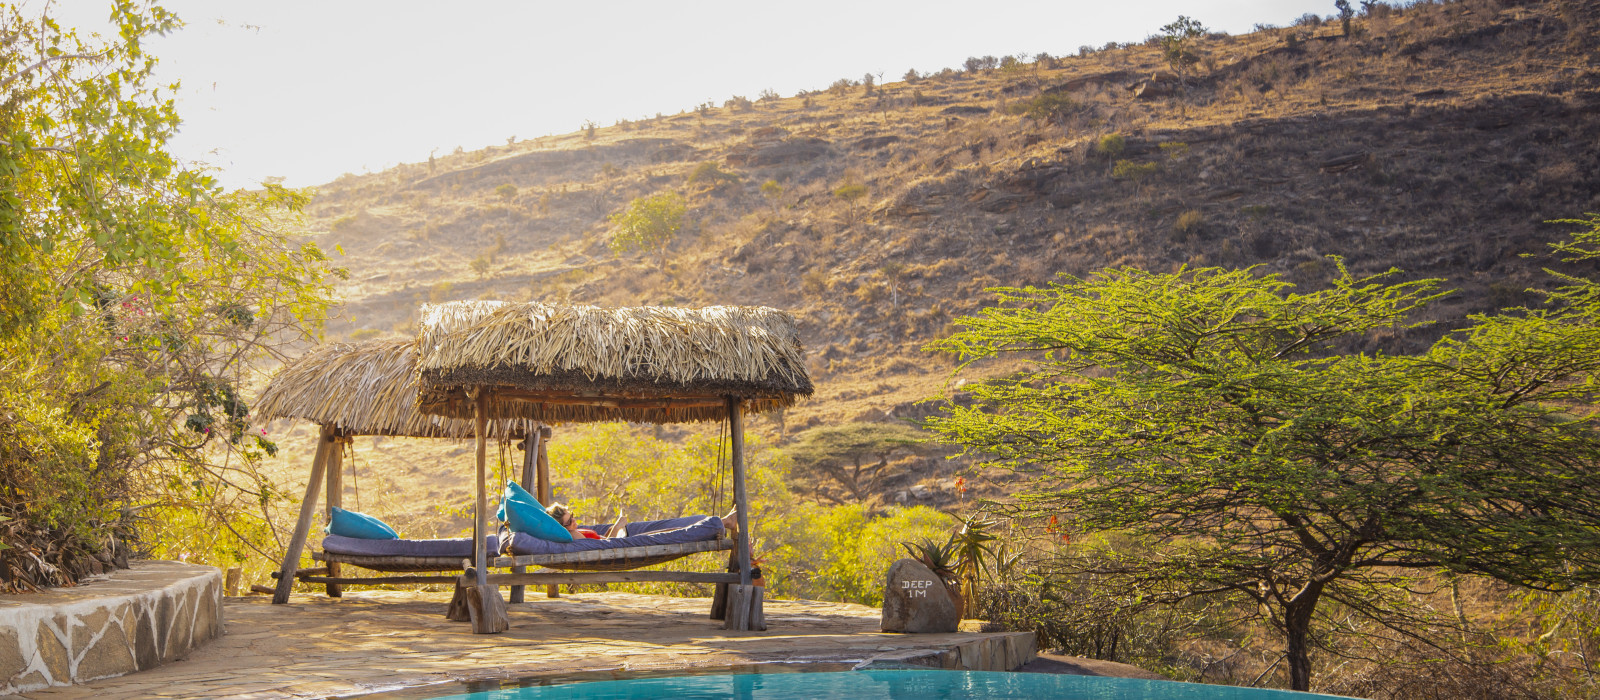 Hotel Lewa Wilderness Kenia